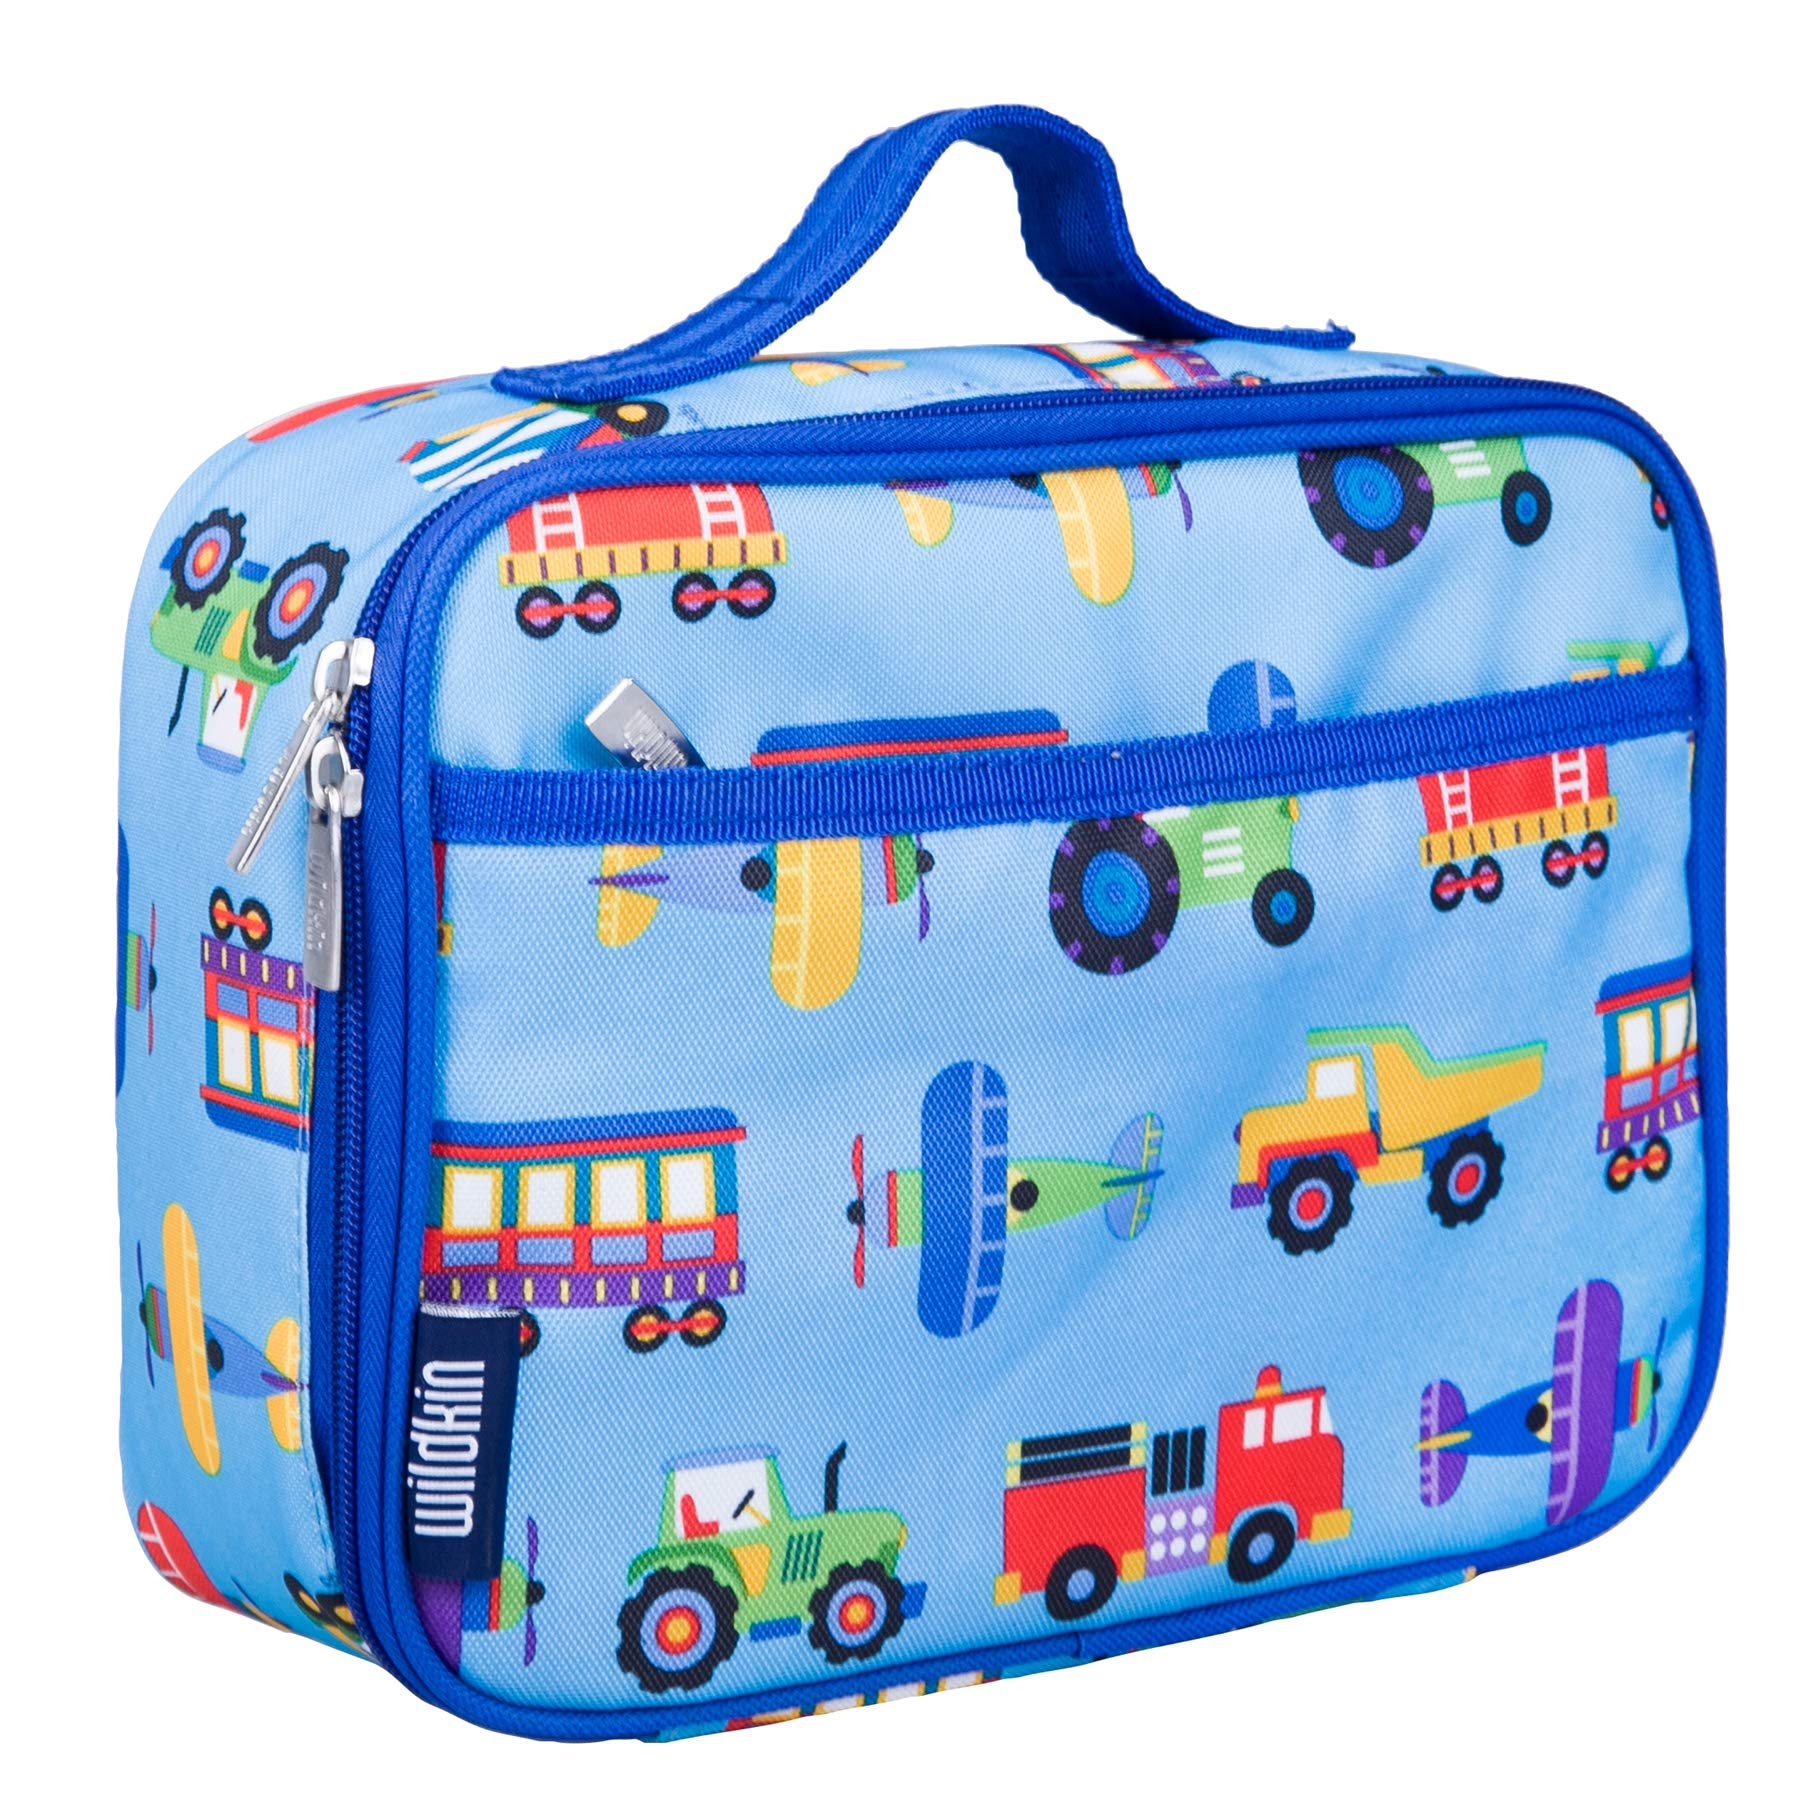 Wildkin Kids Insulated Lunch Box for Boys and Girls, Perfect Size for Packing Hot or Cold Snacks for School and Travel, Patterns Coordinate with Our Backpacks and Duffel Bags by Wildkin